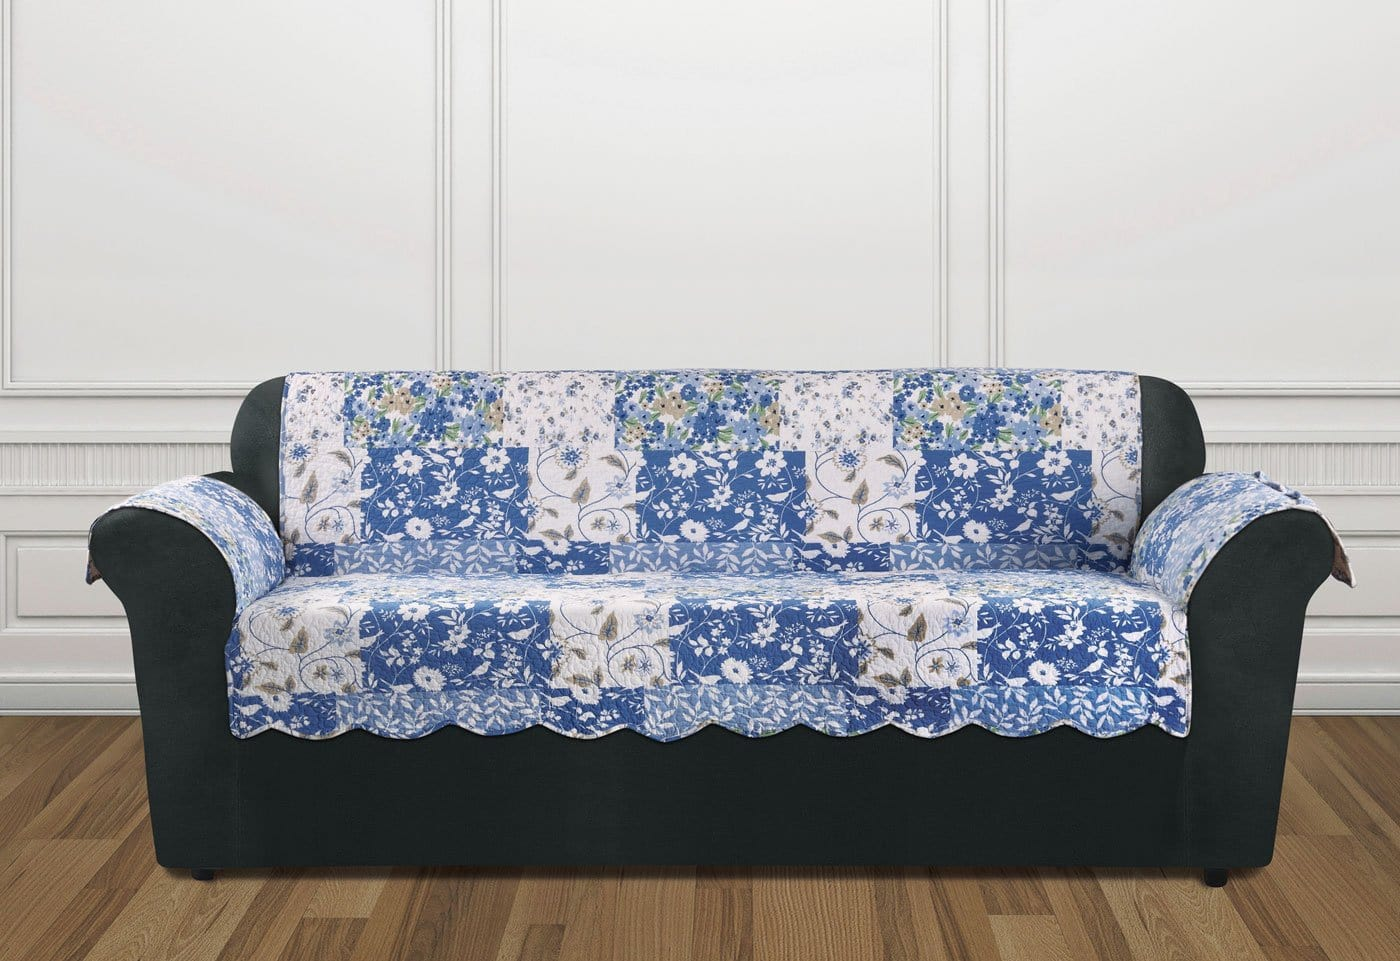 Heirloom Quilt Sofa Furniture Cover U2013 SureFit